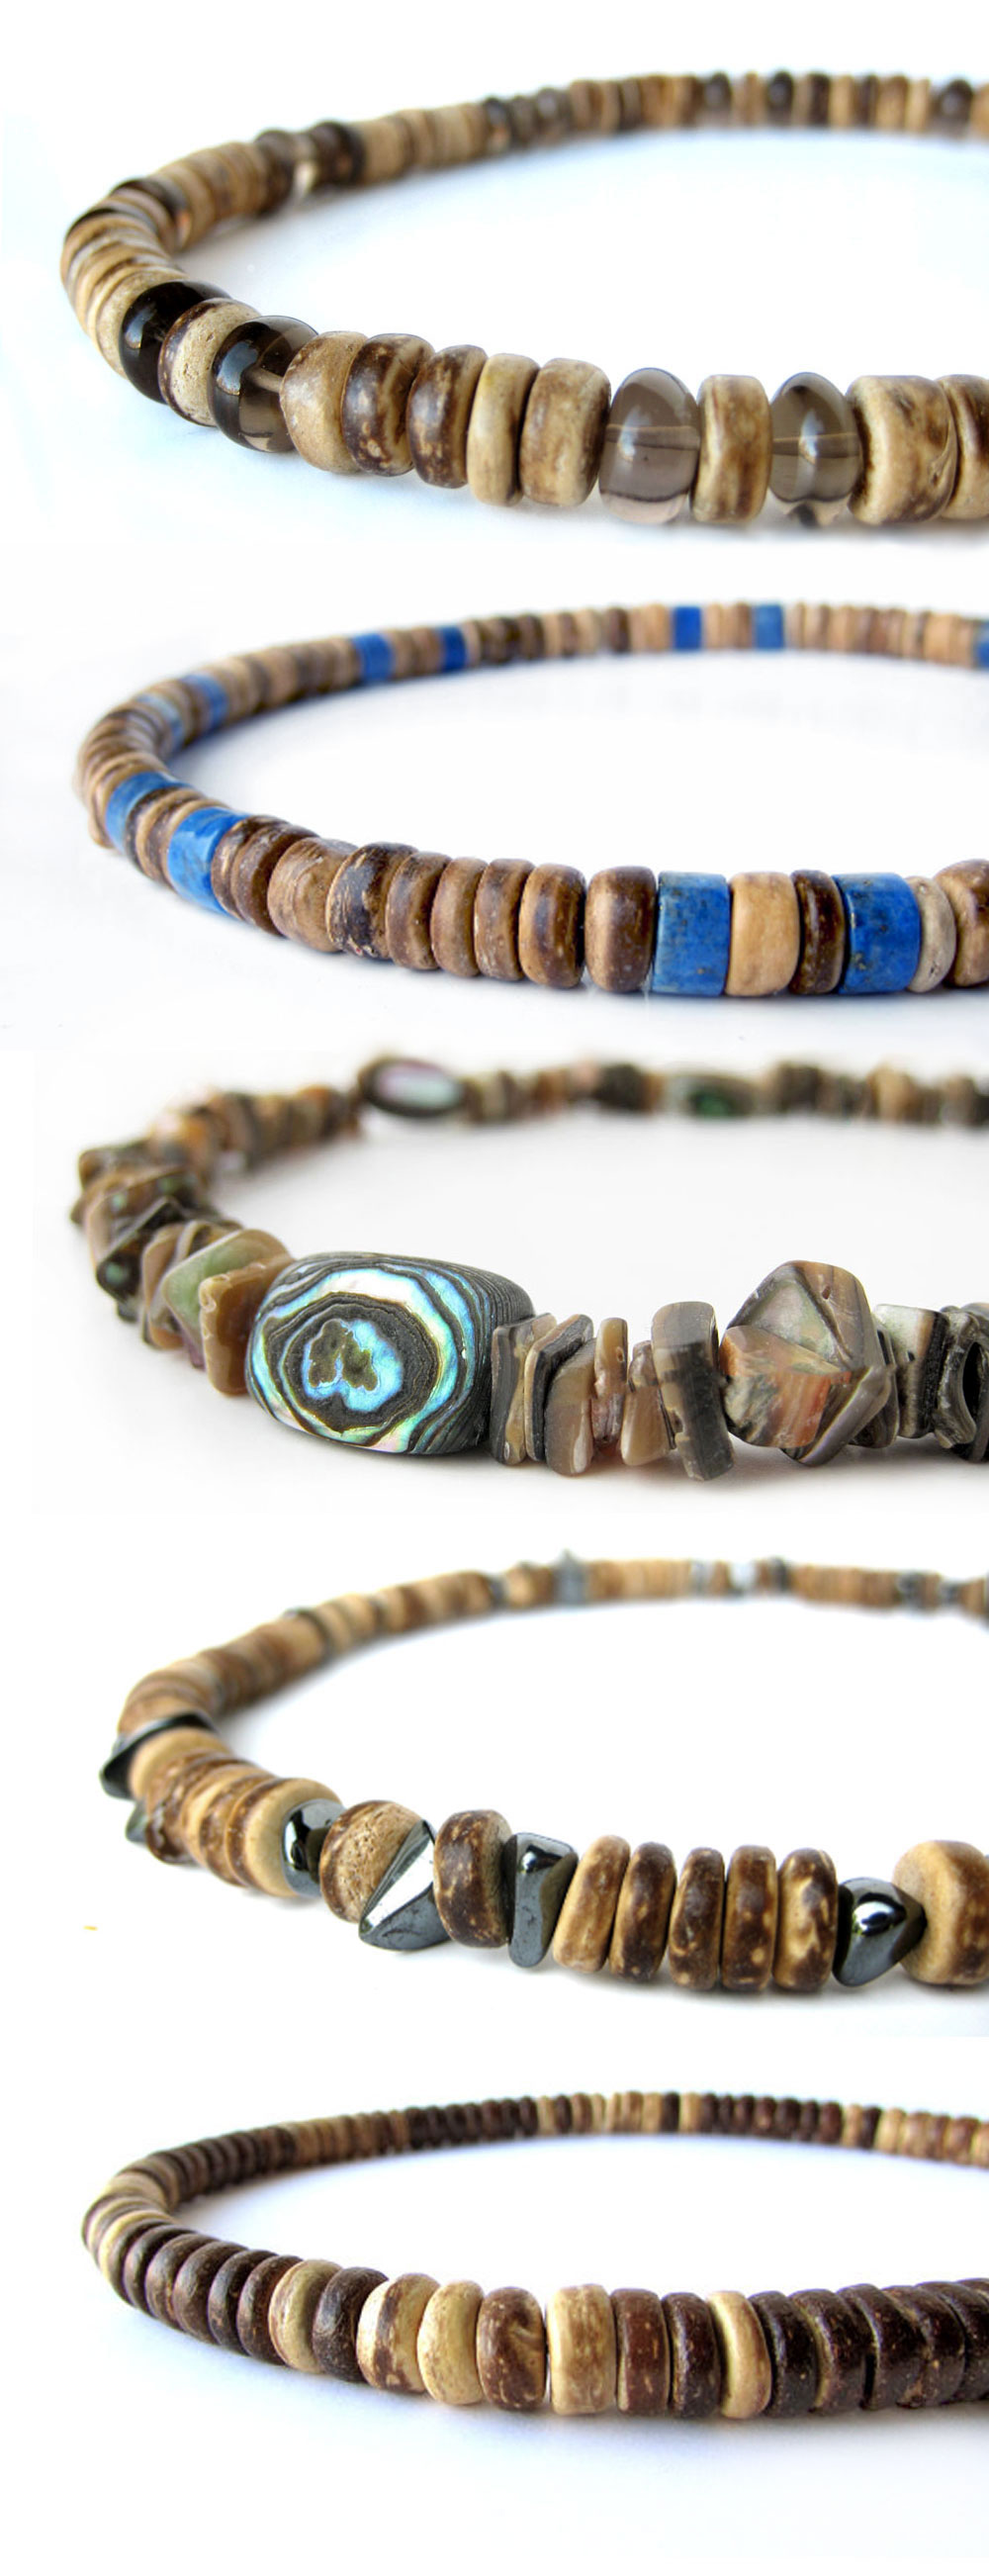 Wholesale men's beaded necklaces by Jenny Hoople